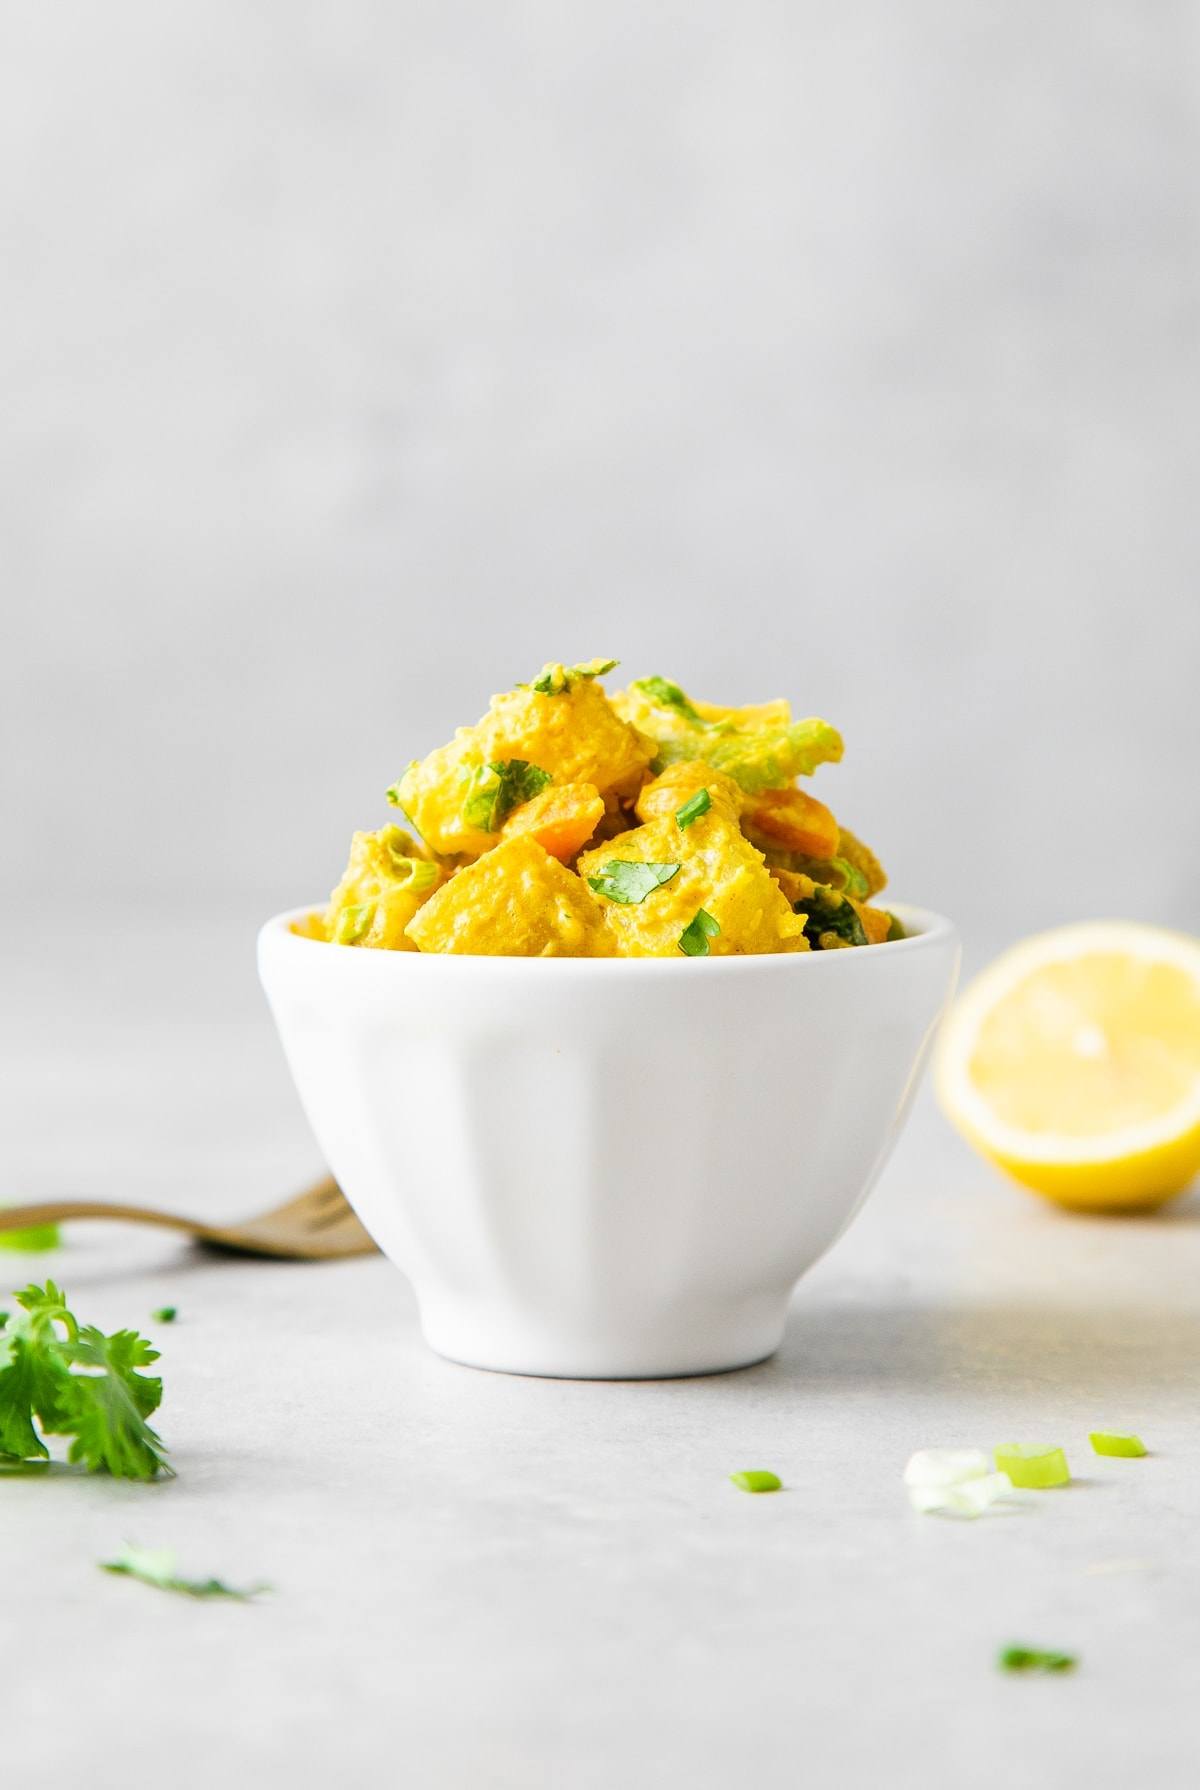 head on view of healthy curried potato salad in a small white bowl with items surrounding.